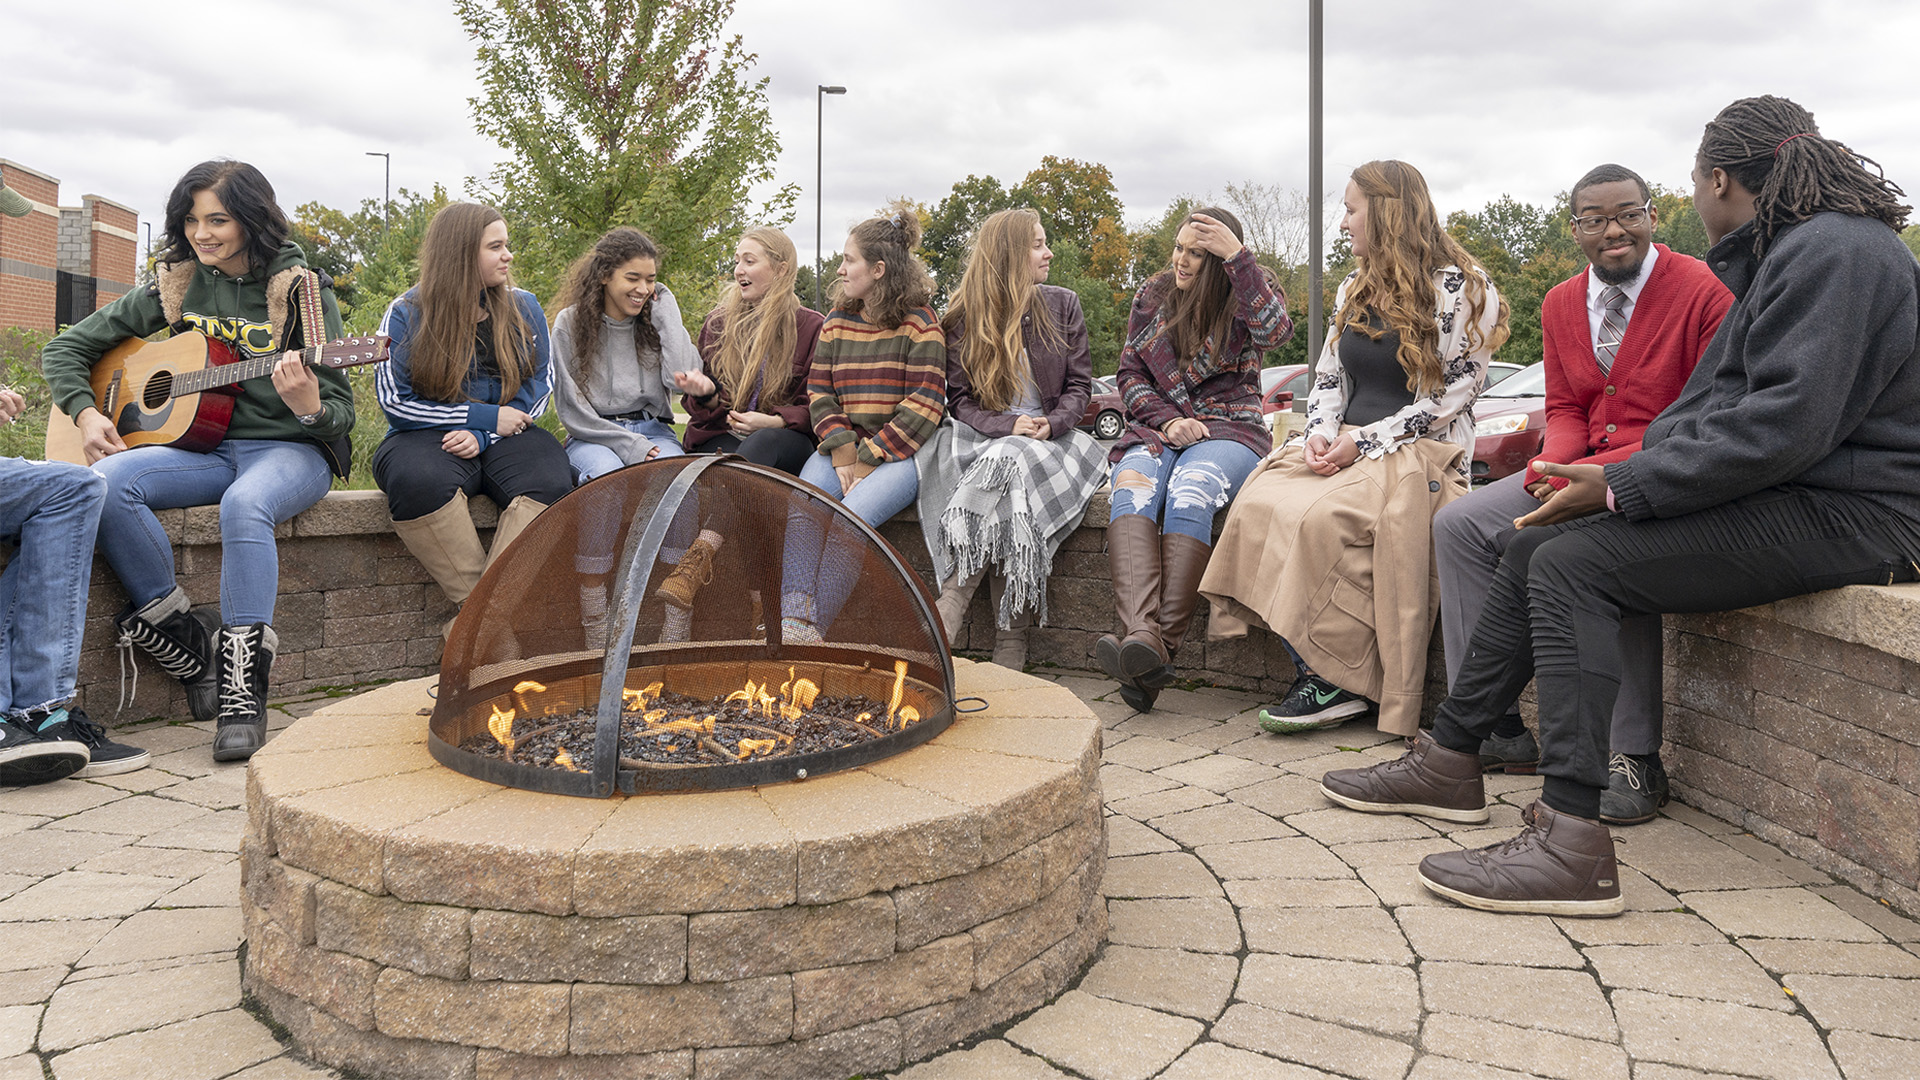 Students sitting around the residence halls firepit